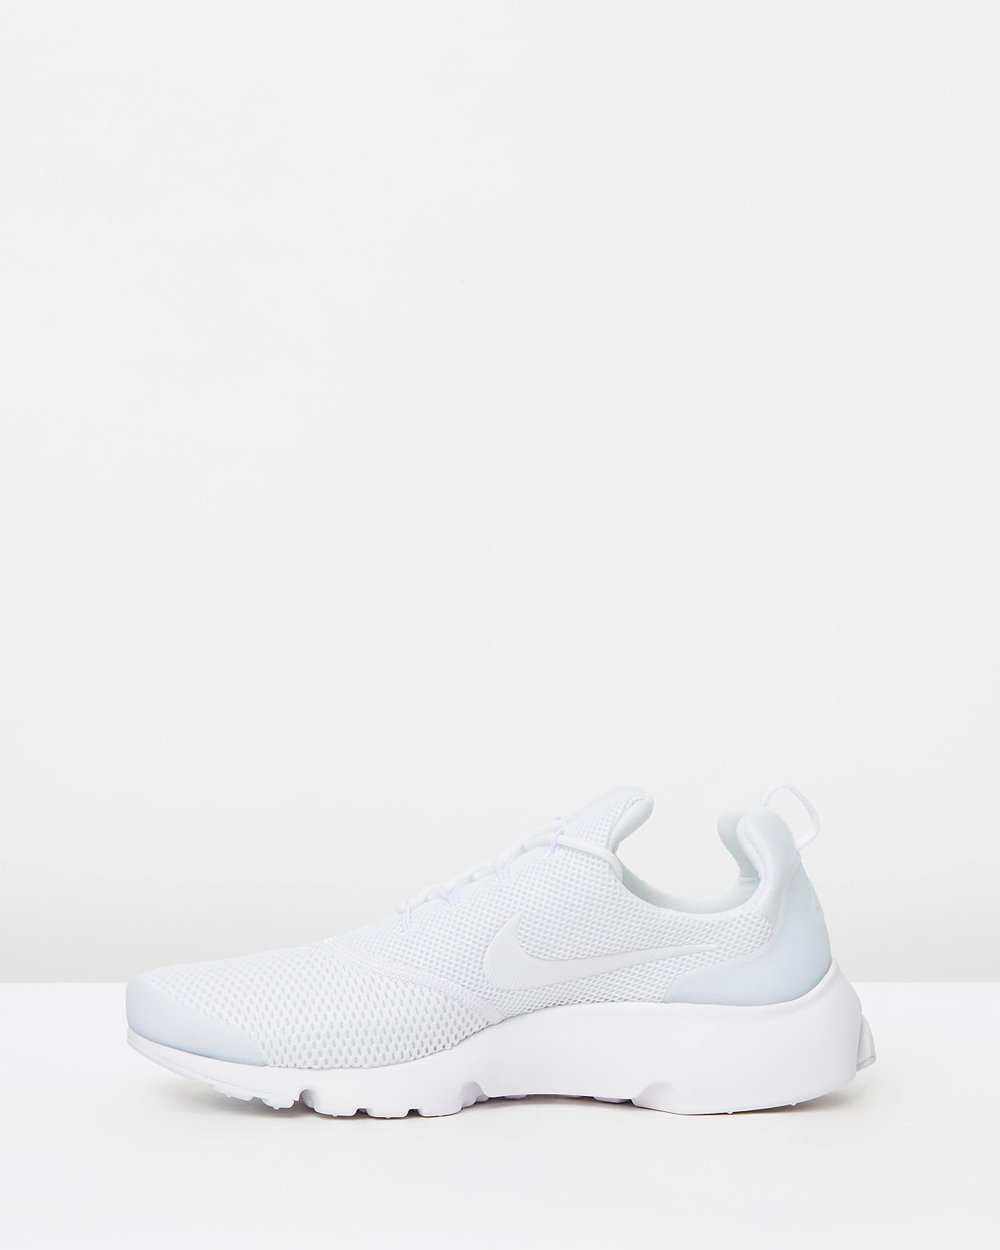 lowest price 4a371 53da7 Women's Nike Presto Fly